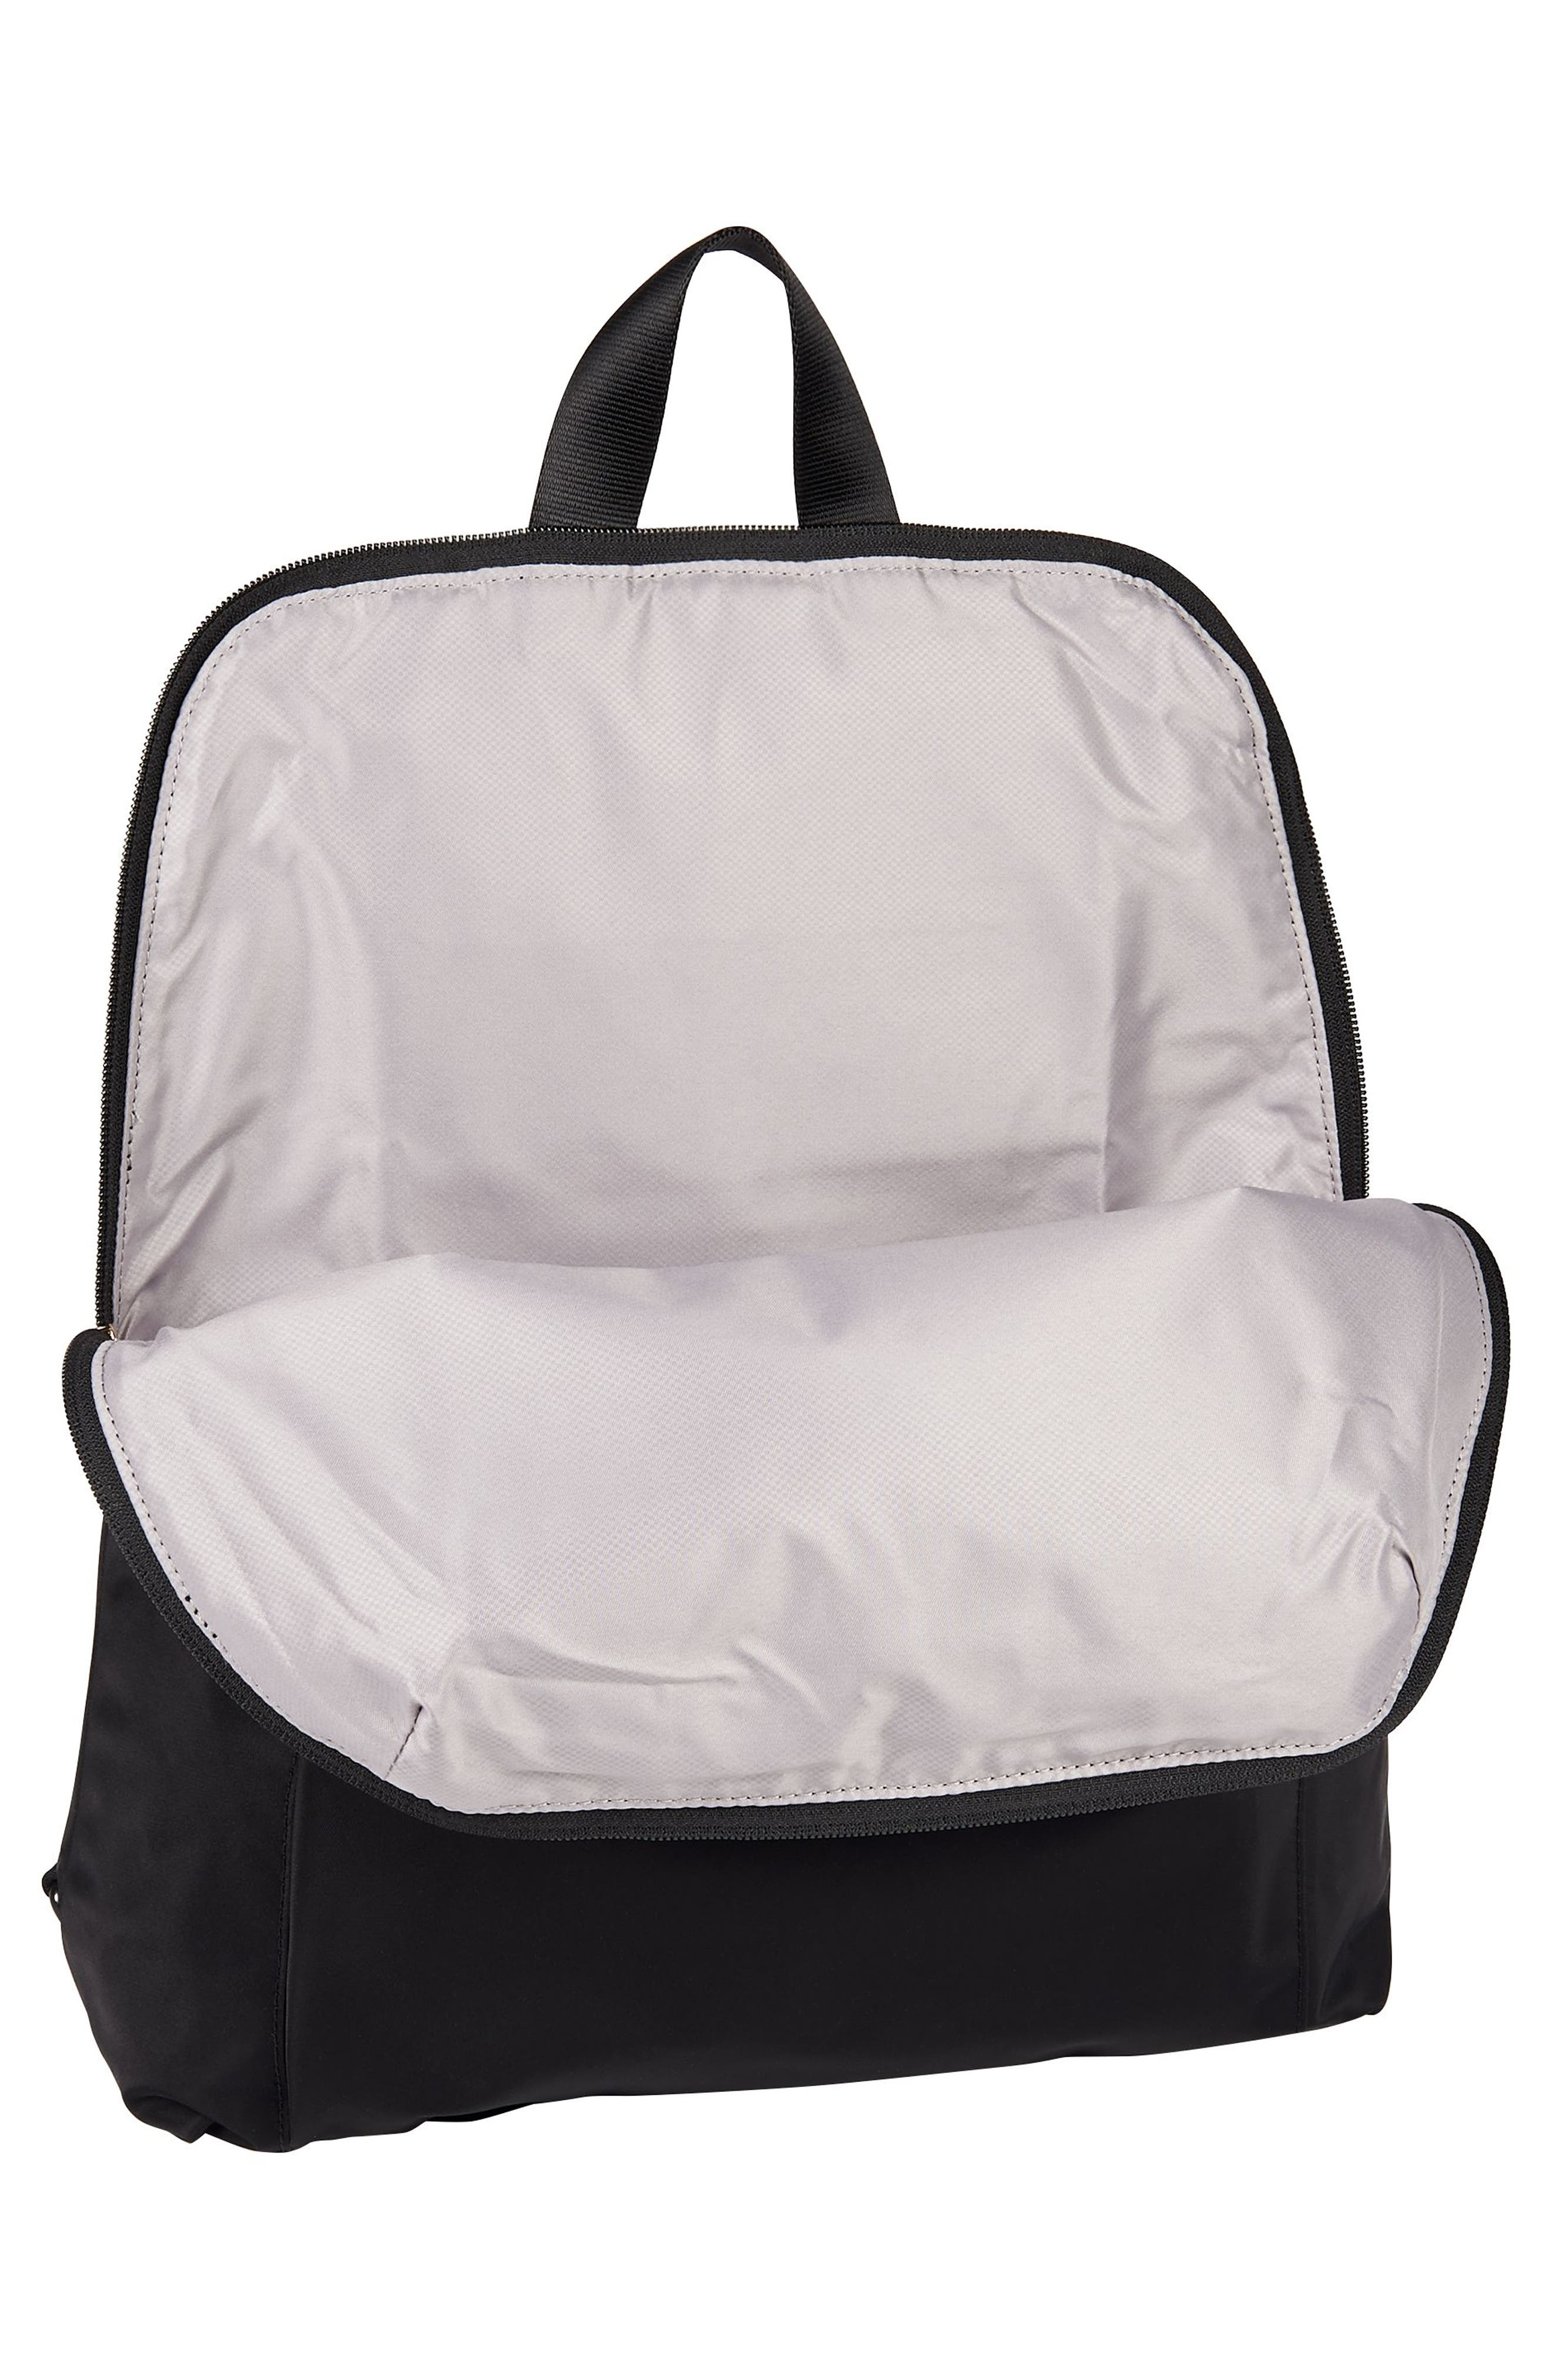 TUMI,                             Voyageur - Just in Case Nylon Travel Backpack,                             Alternate thumbnail 3, color,                             001